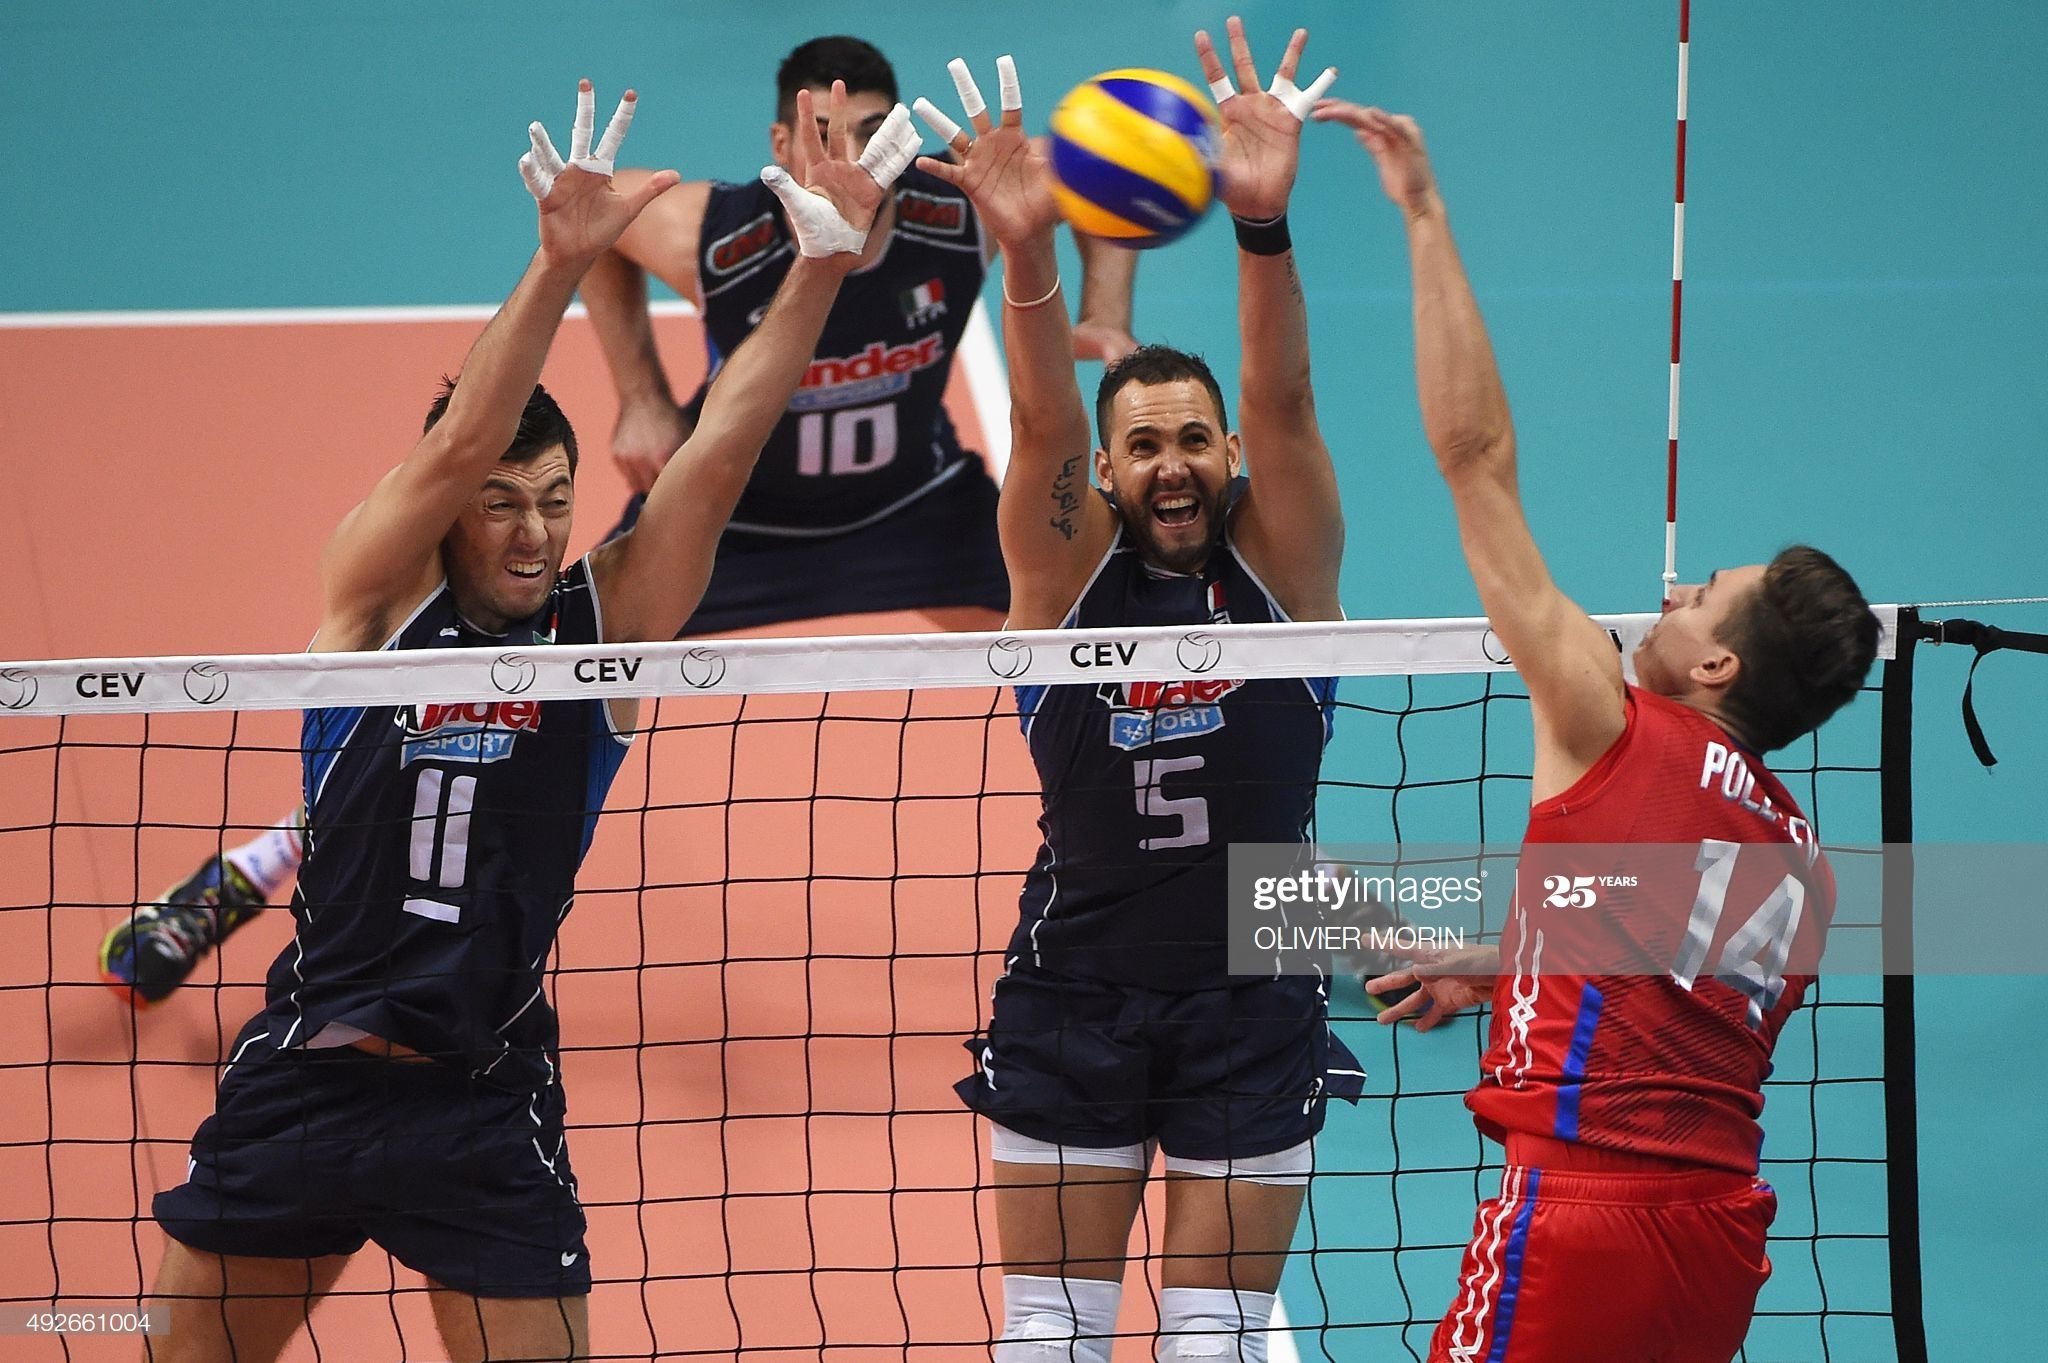 Russia S Victor Poletaev Hits The Ball In Front Of Italy S Osmany In 2020 Mens Volleyball Volleyball Victor